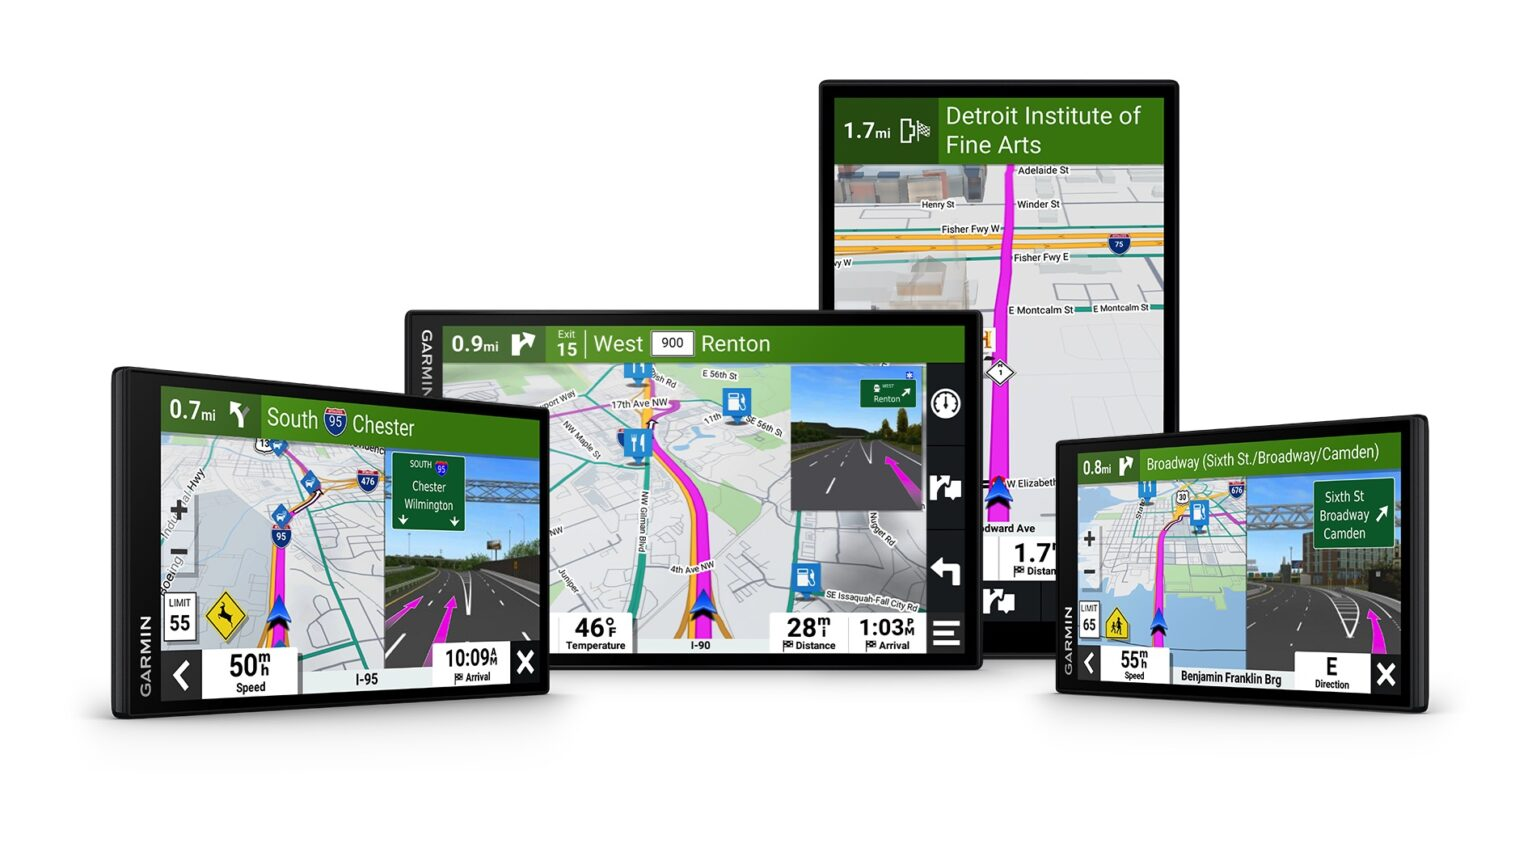 say-goodbye-to-google-maps-as-garmin-launches-new-gps-units-with-large-displays